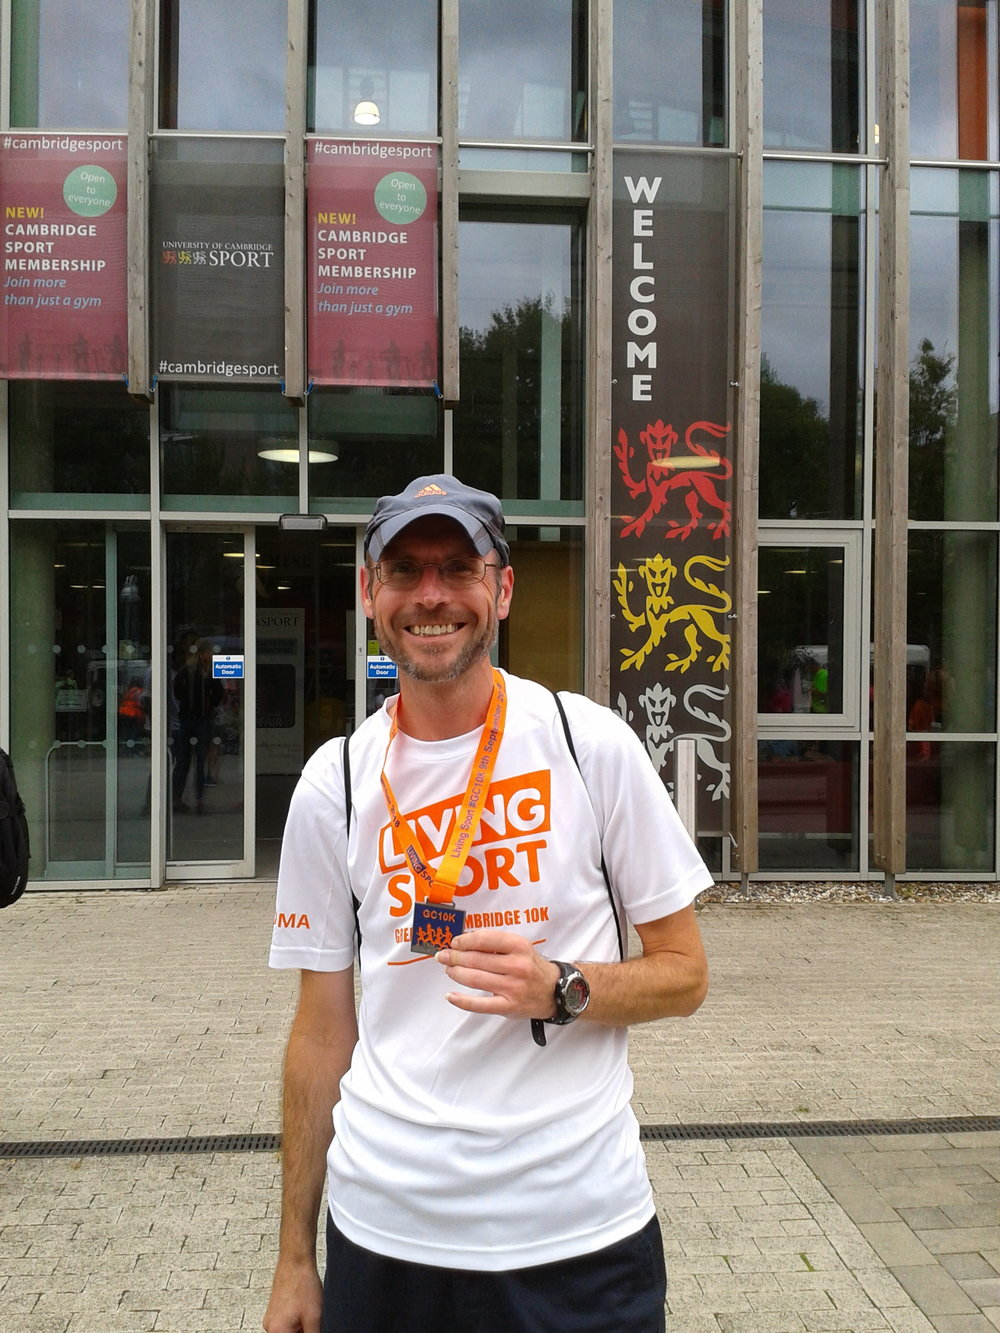 Greater Cambridge 10K 9-9-18.jpg